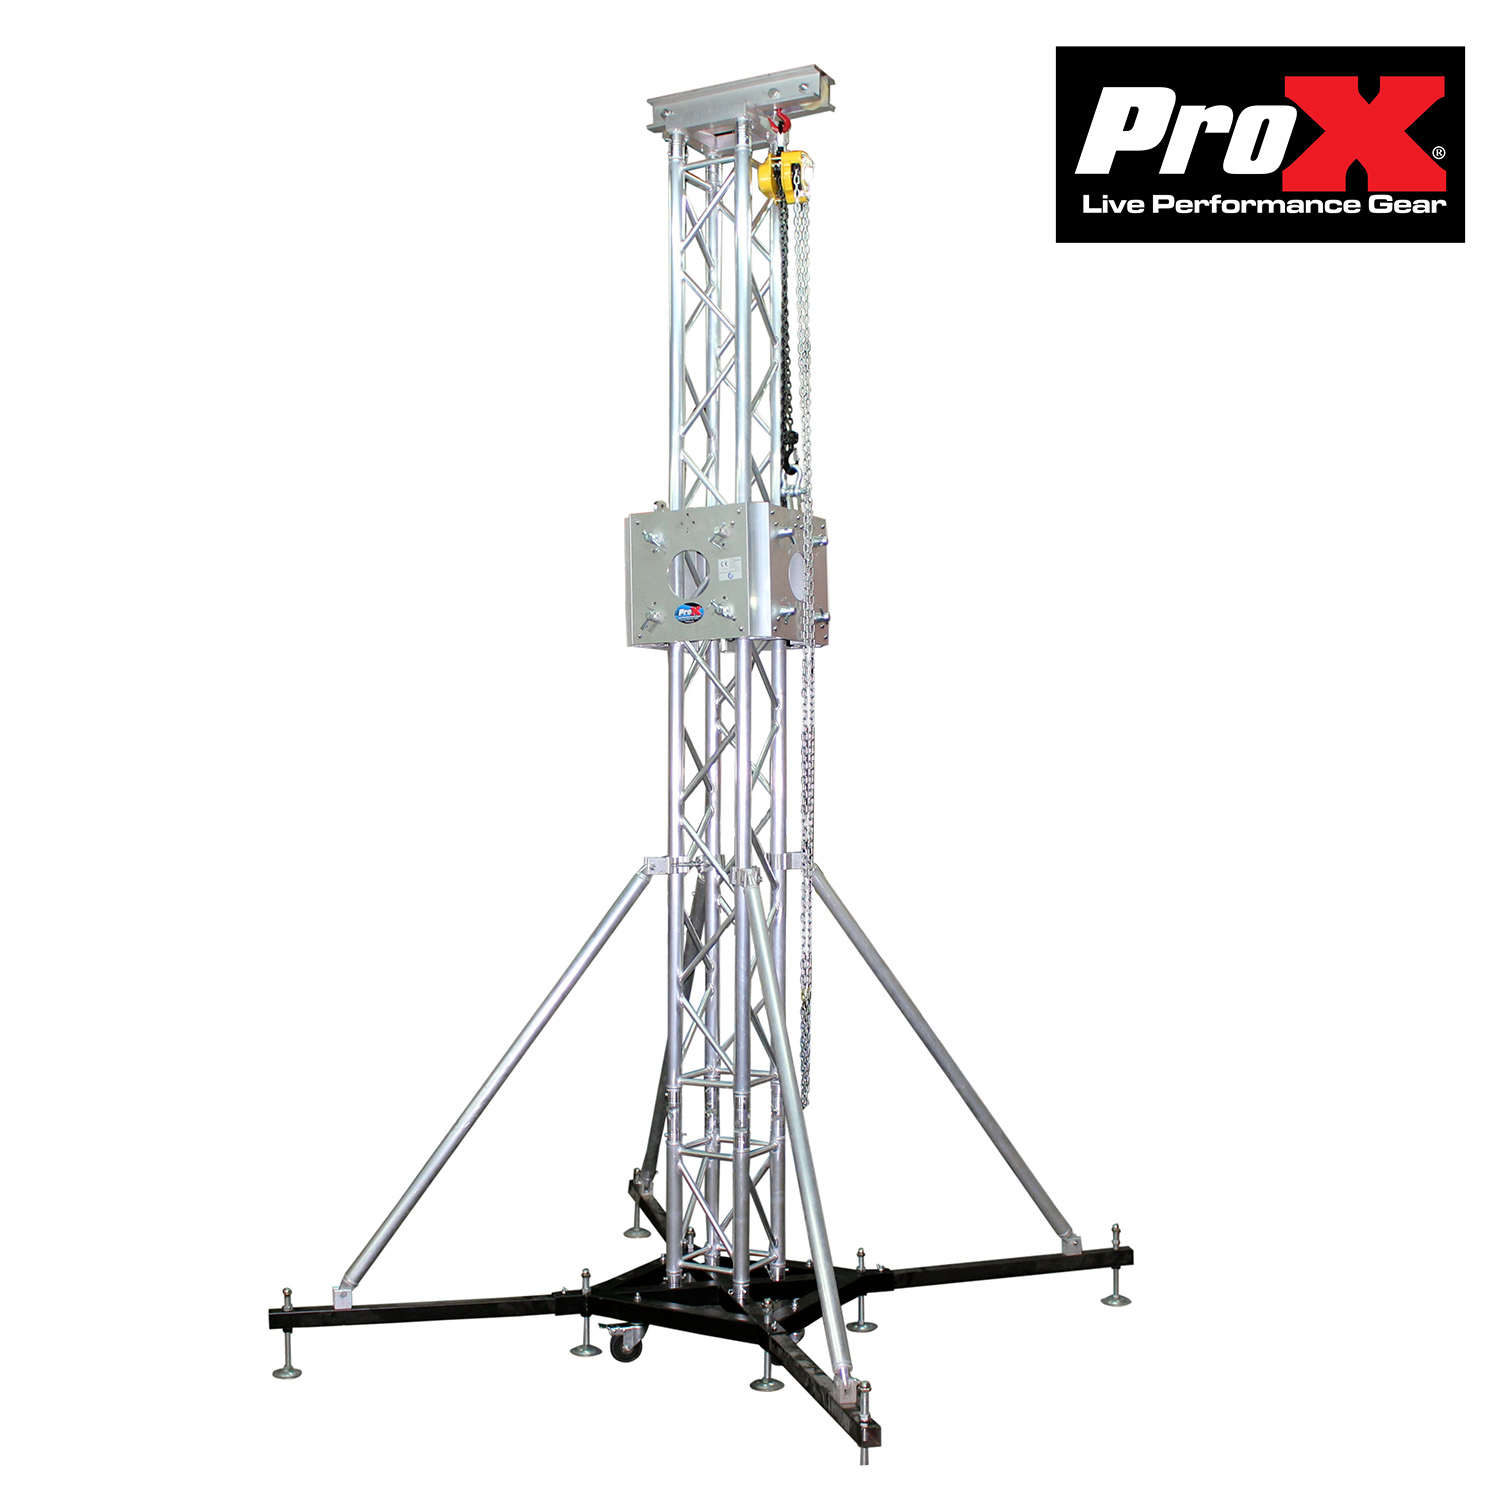 Truss Tower Stage Roofing System Package Includes Top